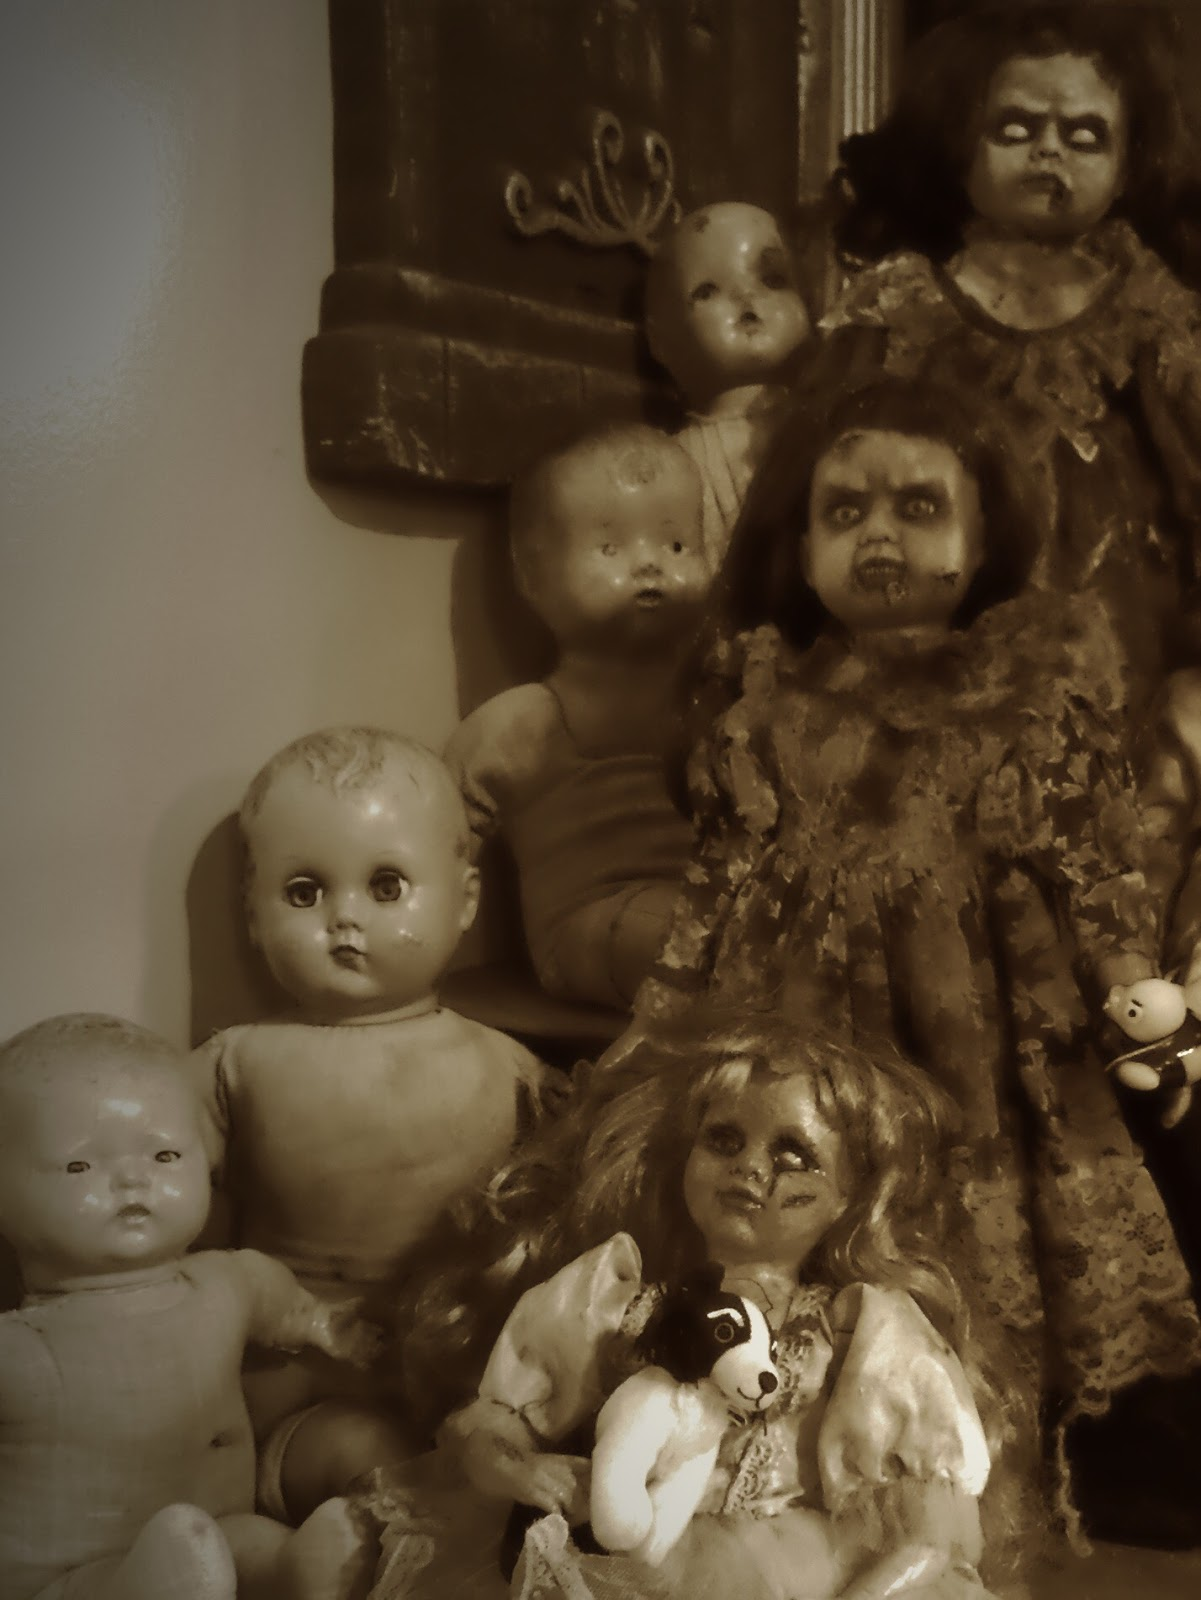 Just your average, run of the mill, typical old dolls